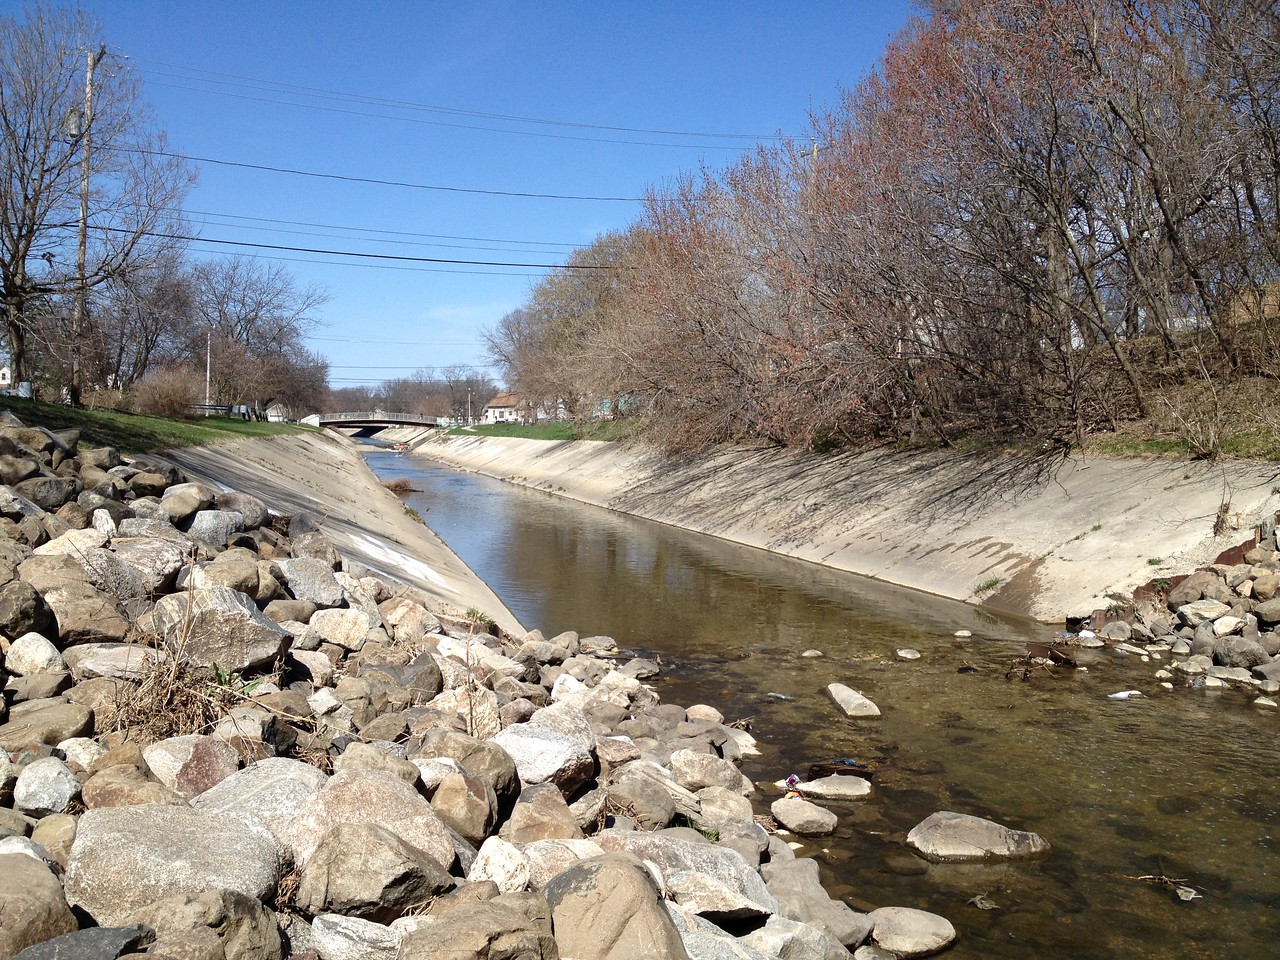 At one time, all of the Kinnickinnic River looked like this upstream, sterile, fast rushing concrete river.  Thanks to the efforts and financial assistance of many, the Kinnickinnic River is being restored to a more natural habitat that will sustain a more diverse biosystem.